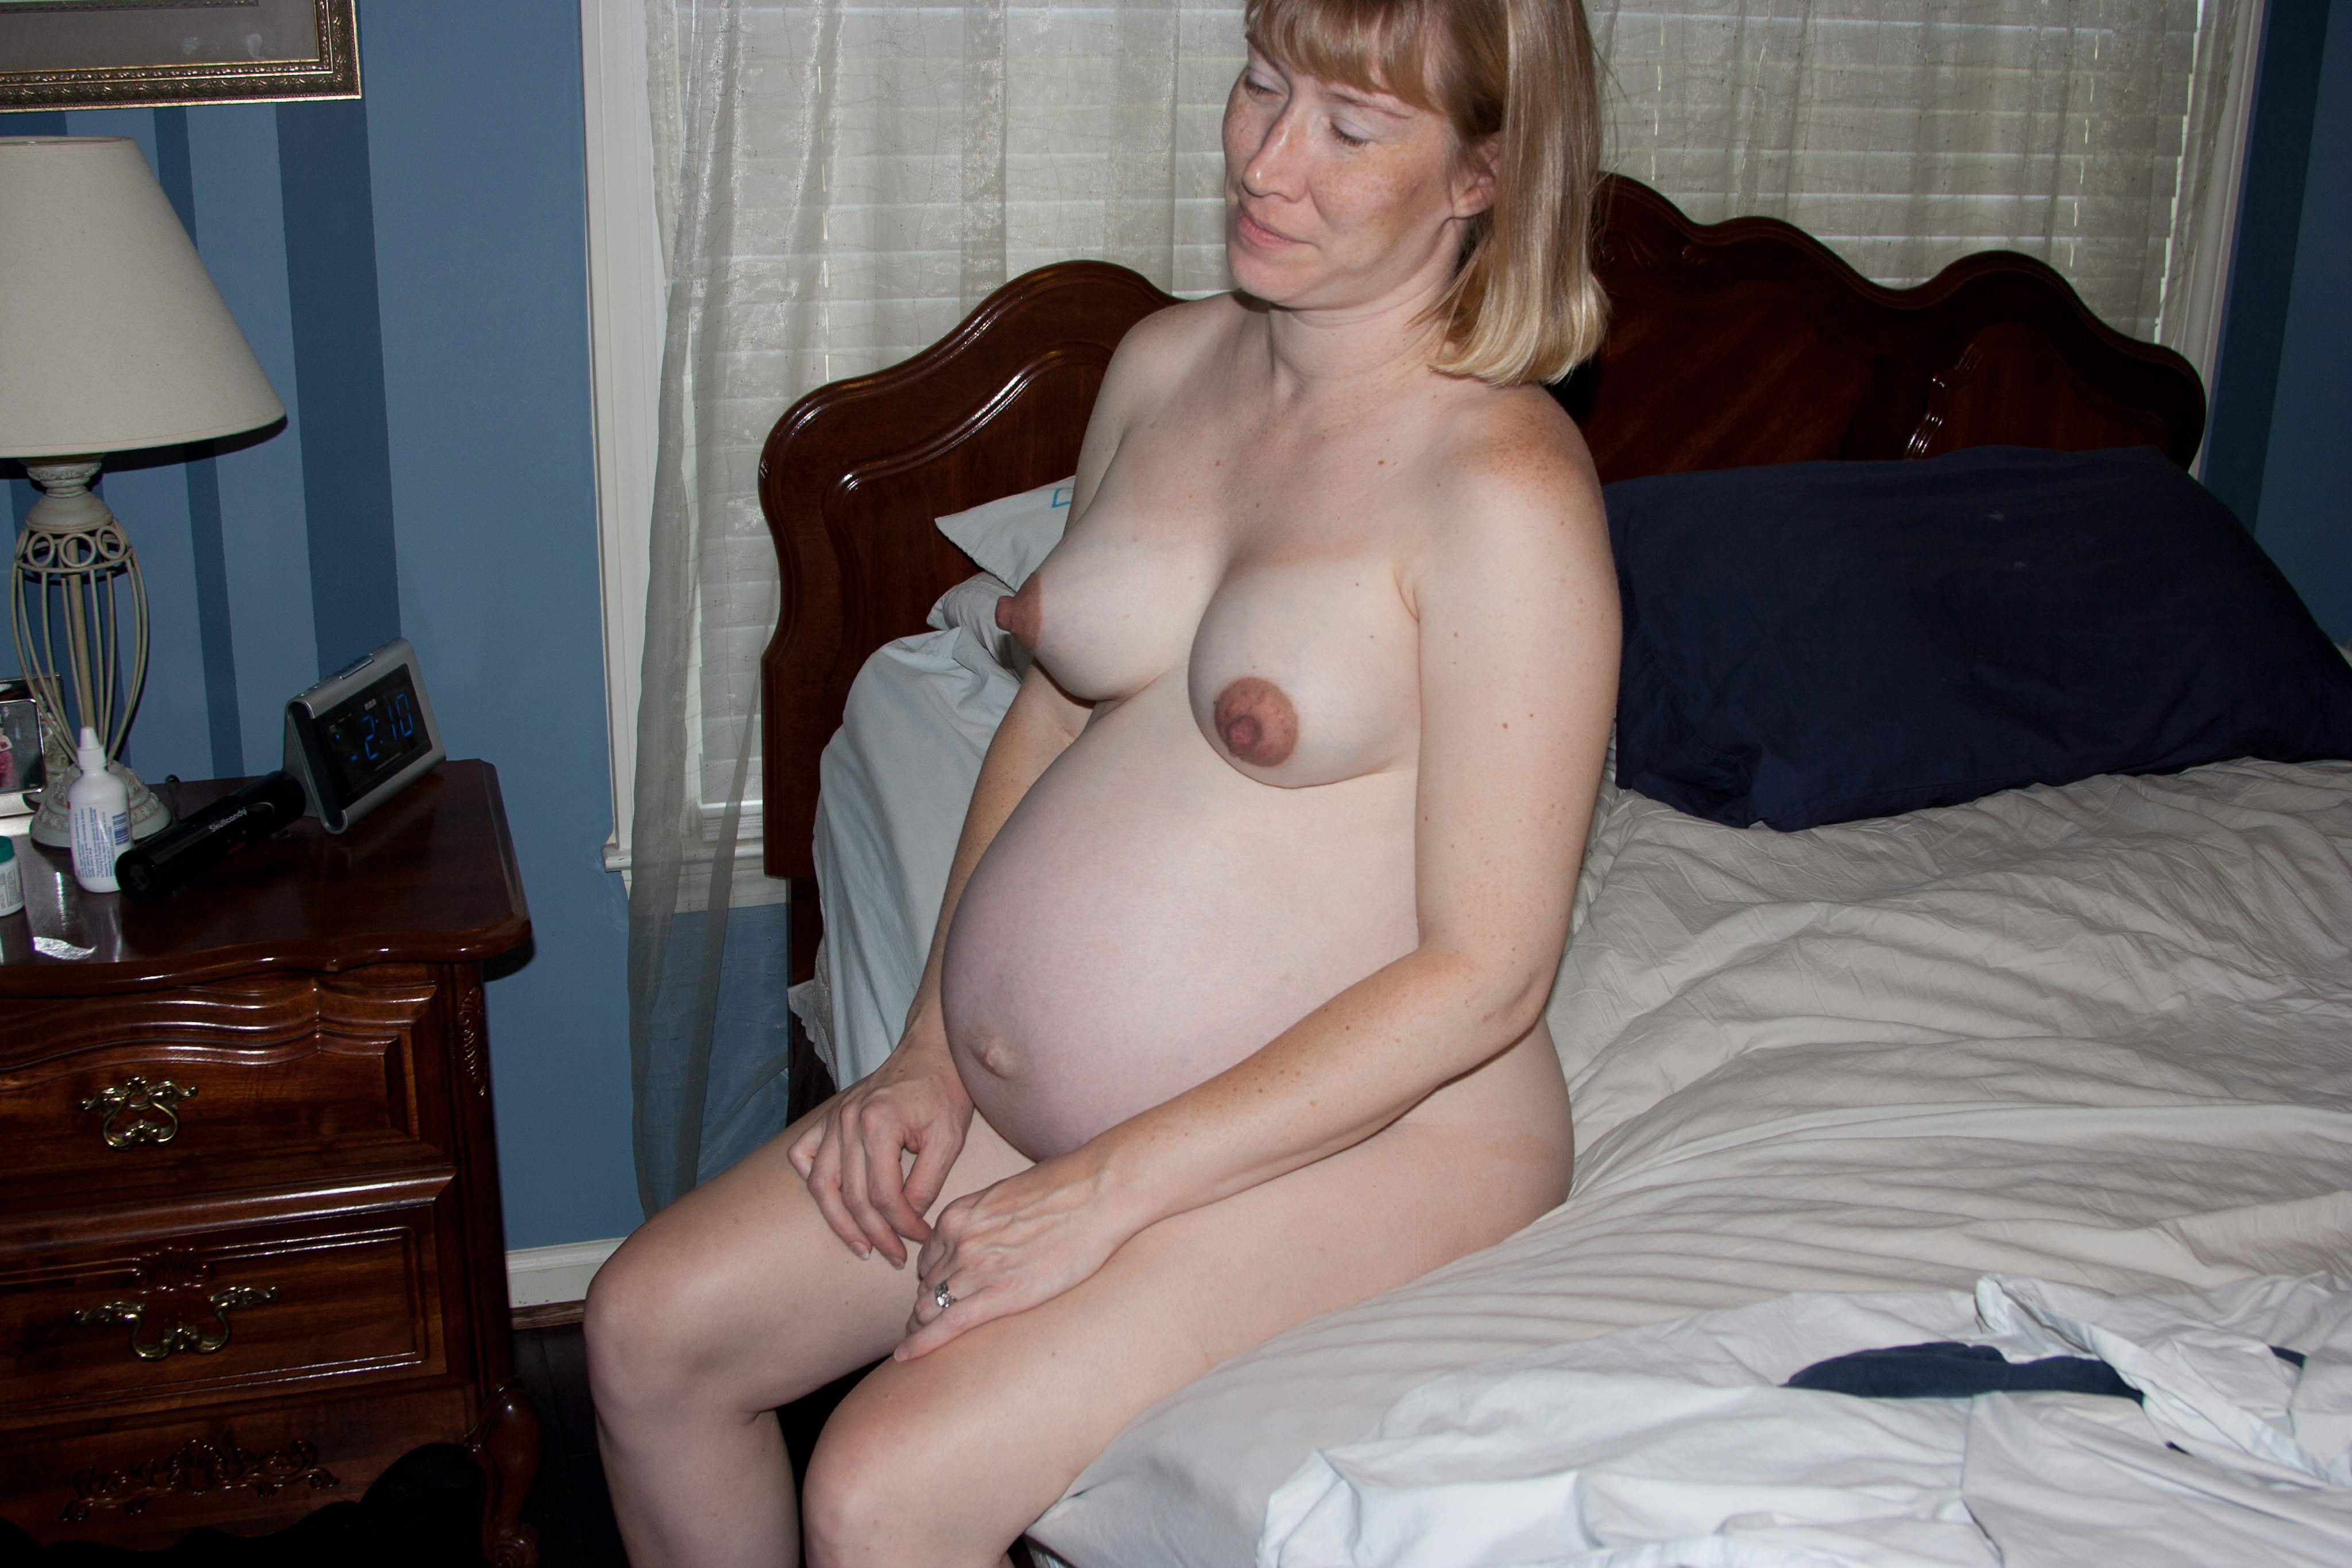 Sexy Pregnant Women On Twitter